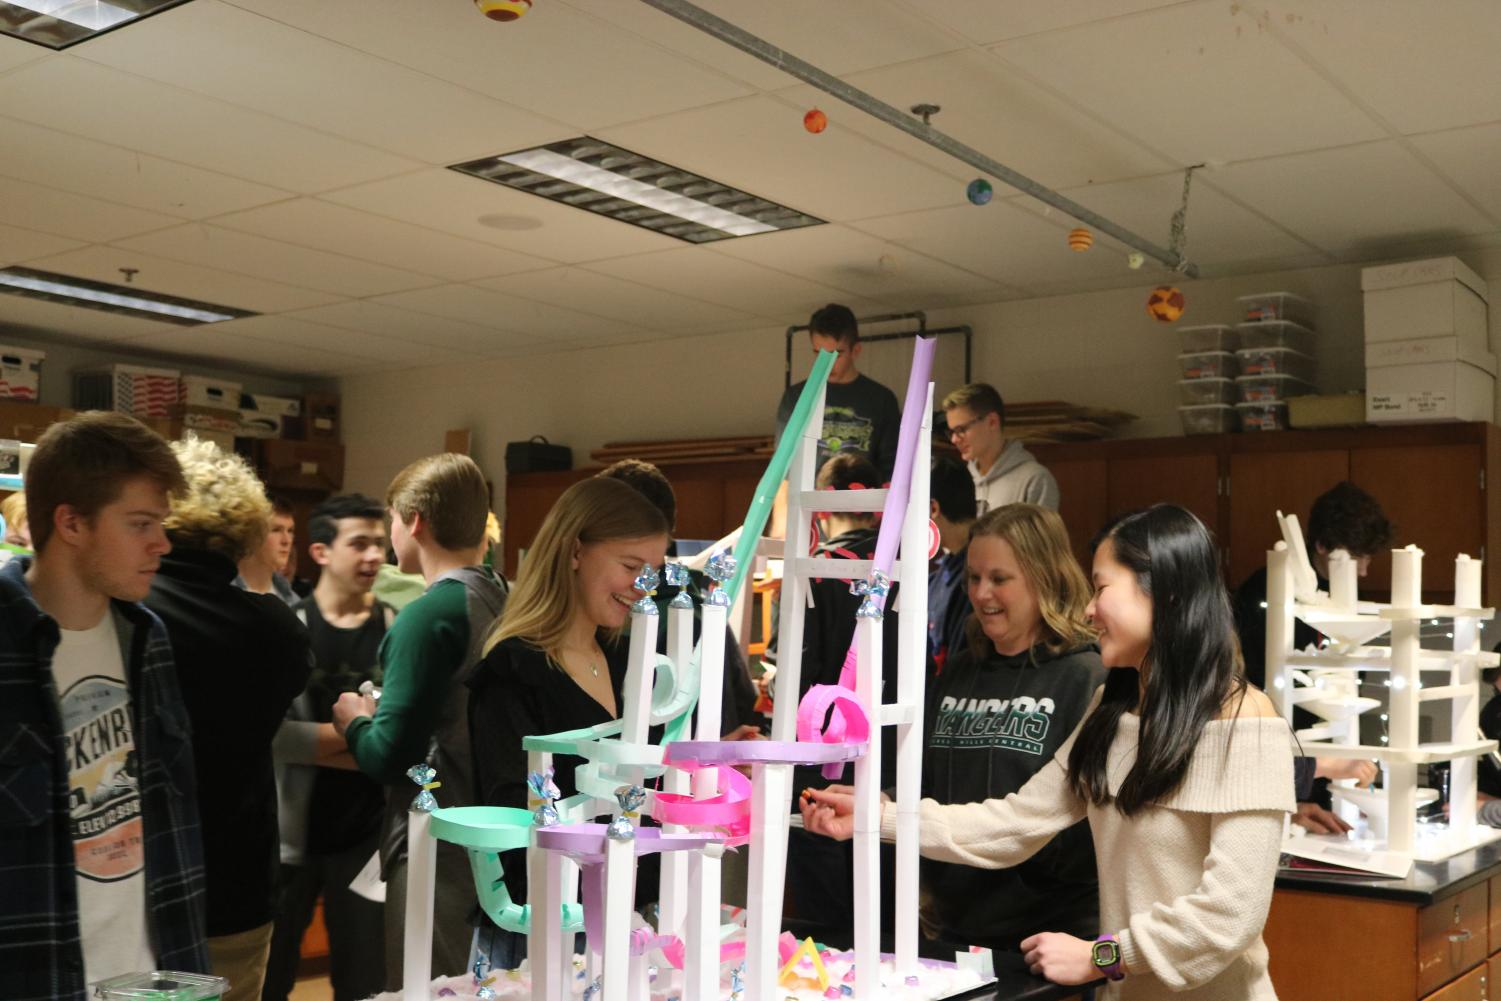 Physics Rollercoaster Project: Photo Gallery